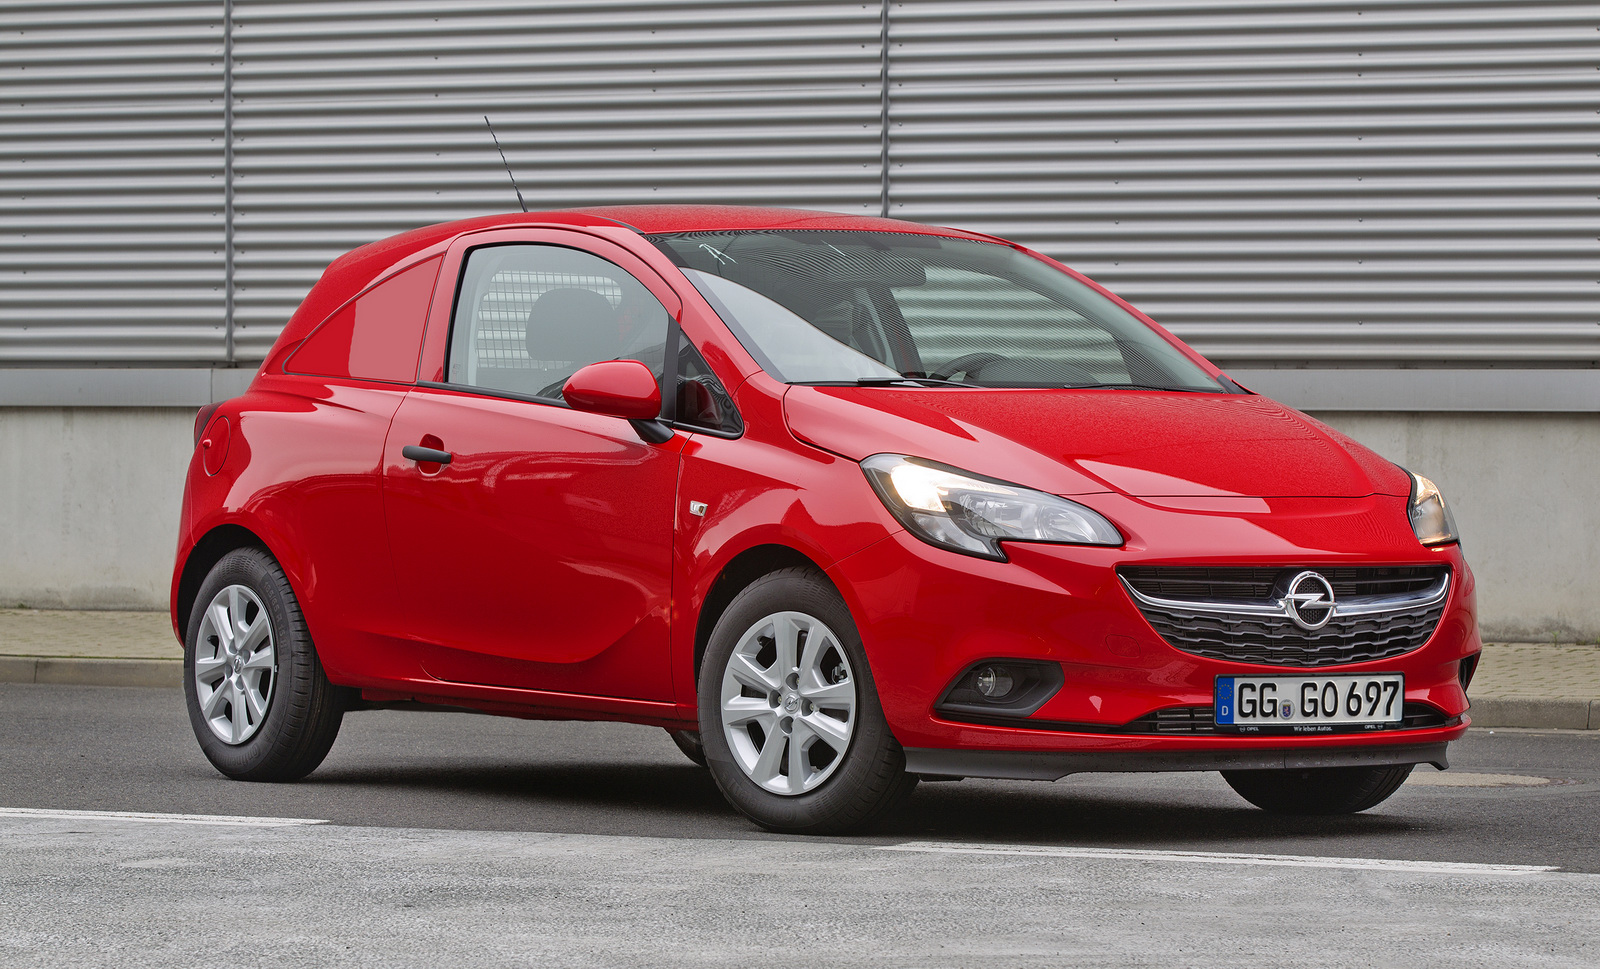 Opel corsavan photo - 2